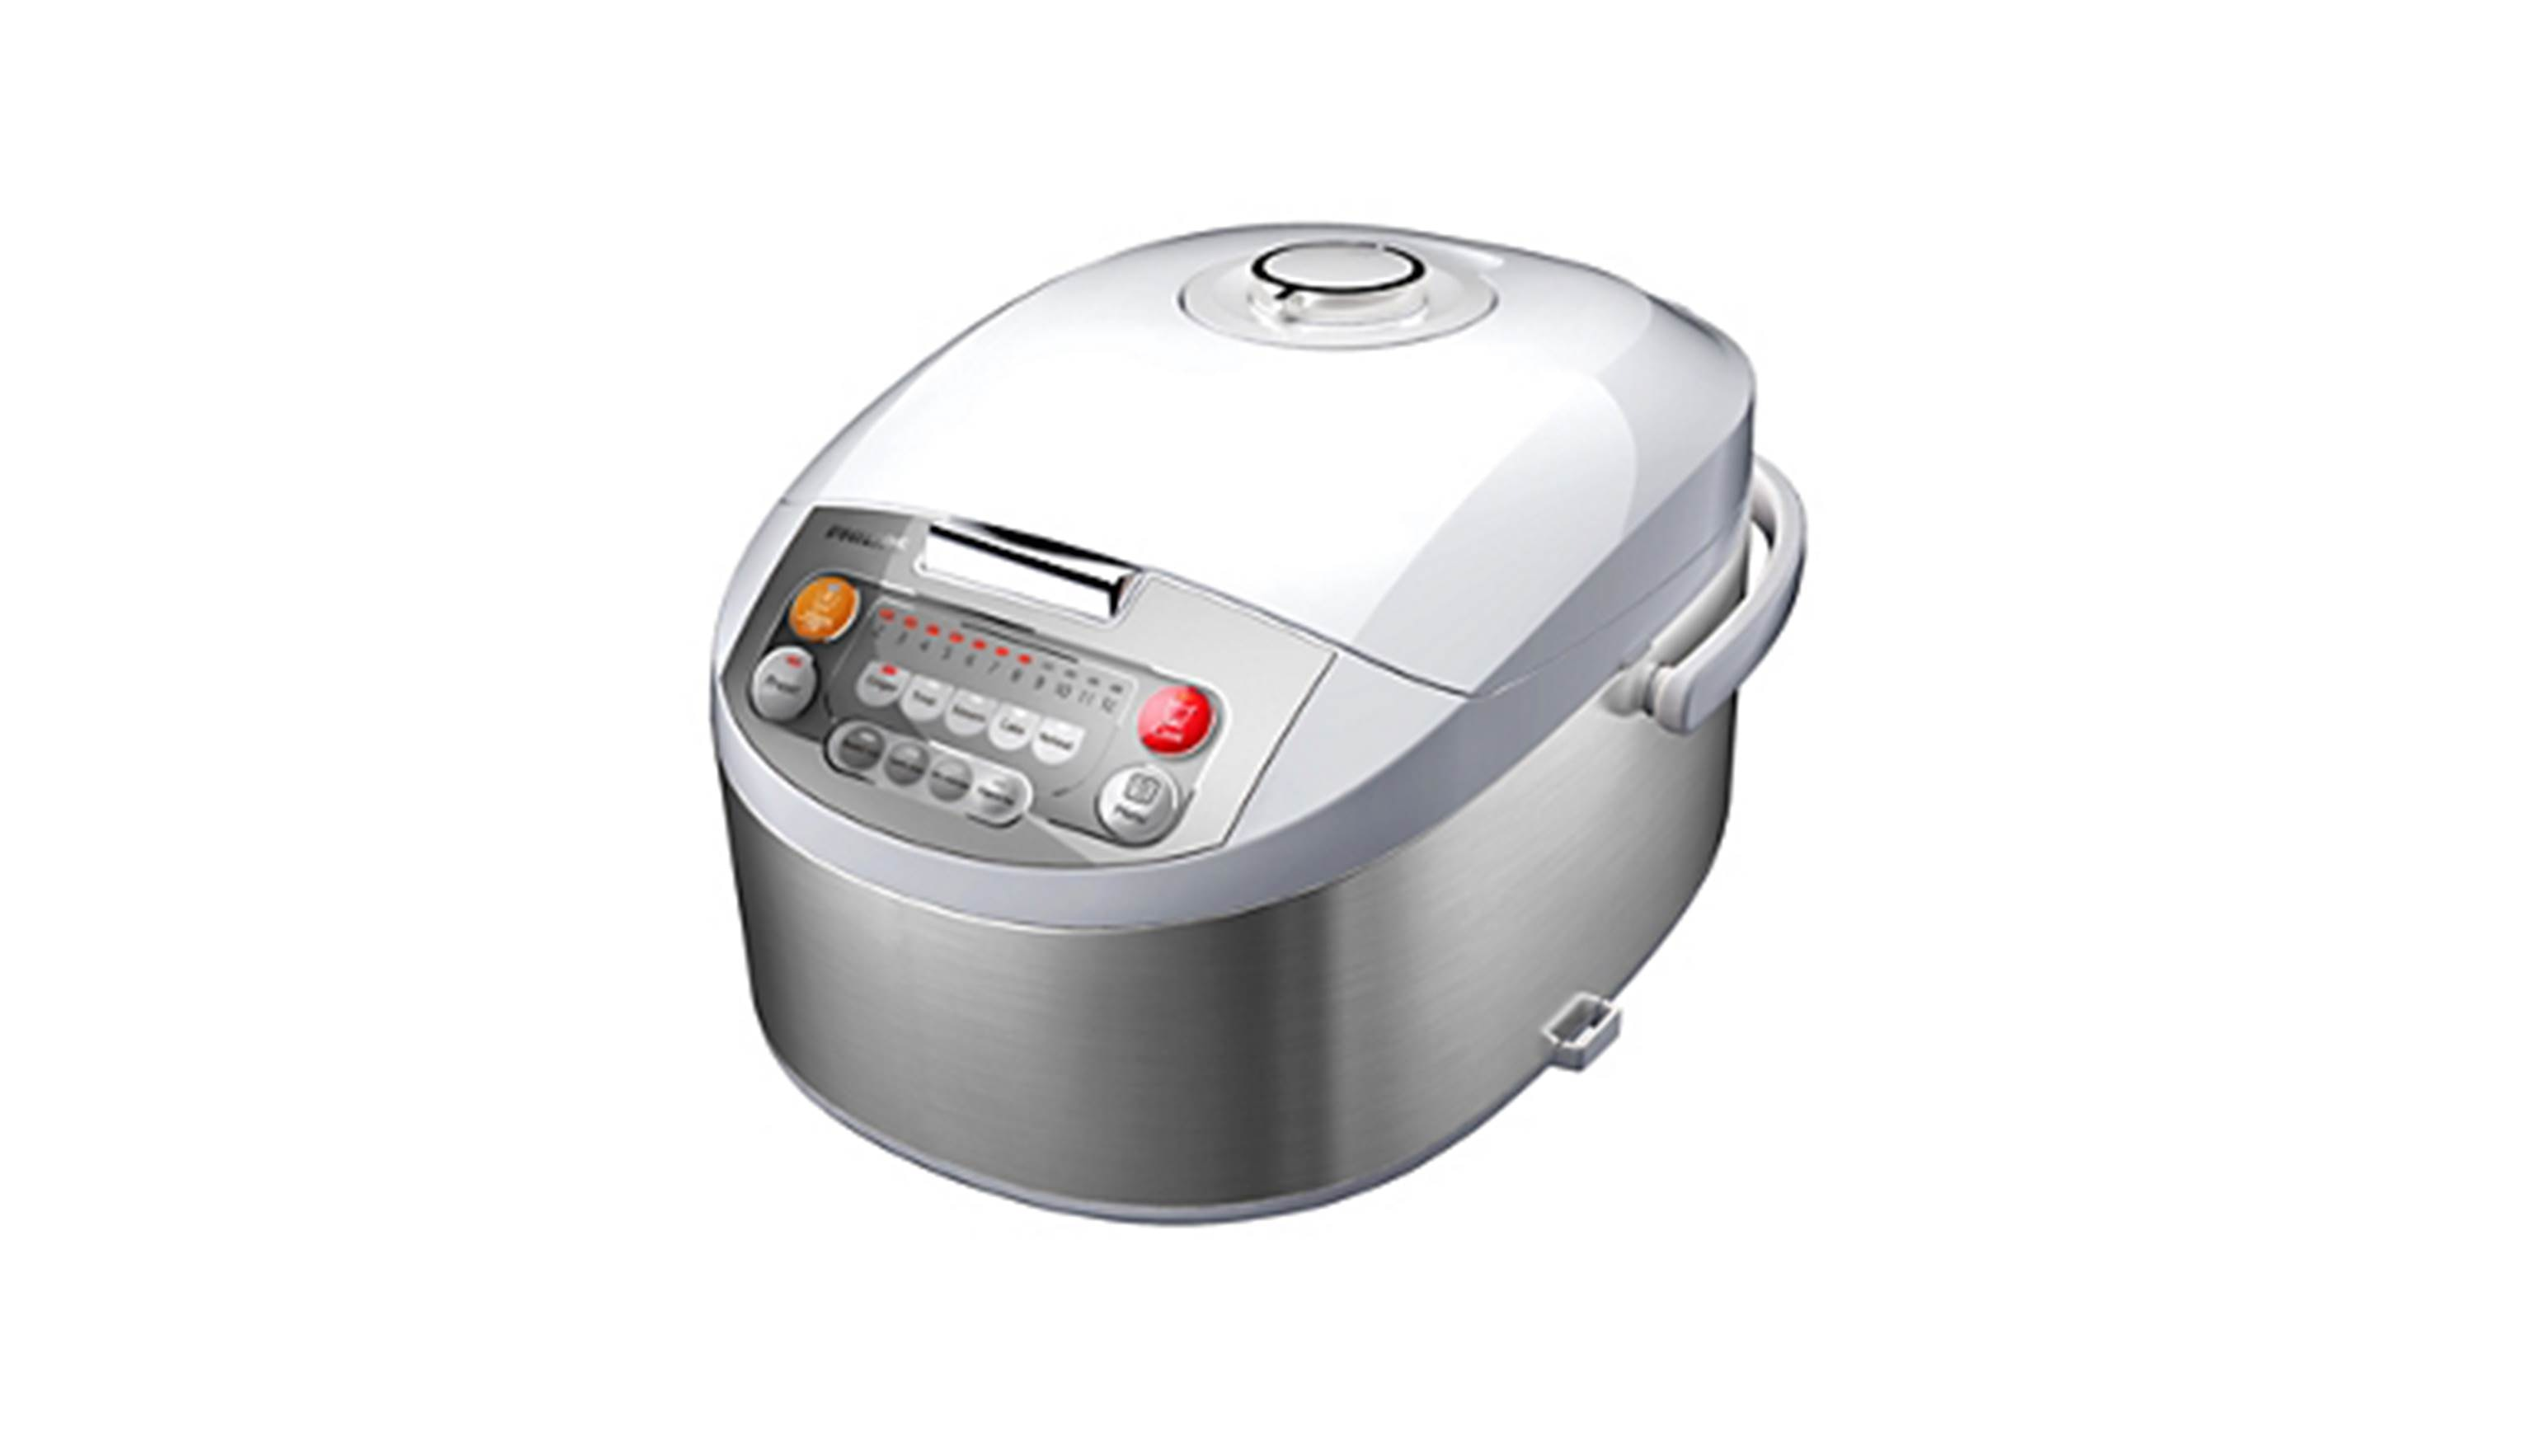 Philips Viva Collection Fuzzy Logic 1L Rice Cooker